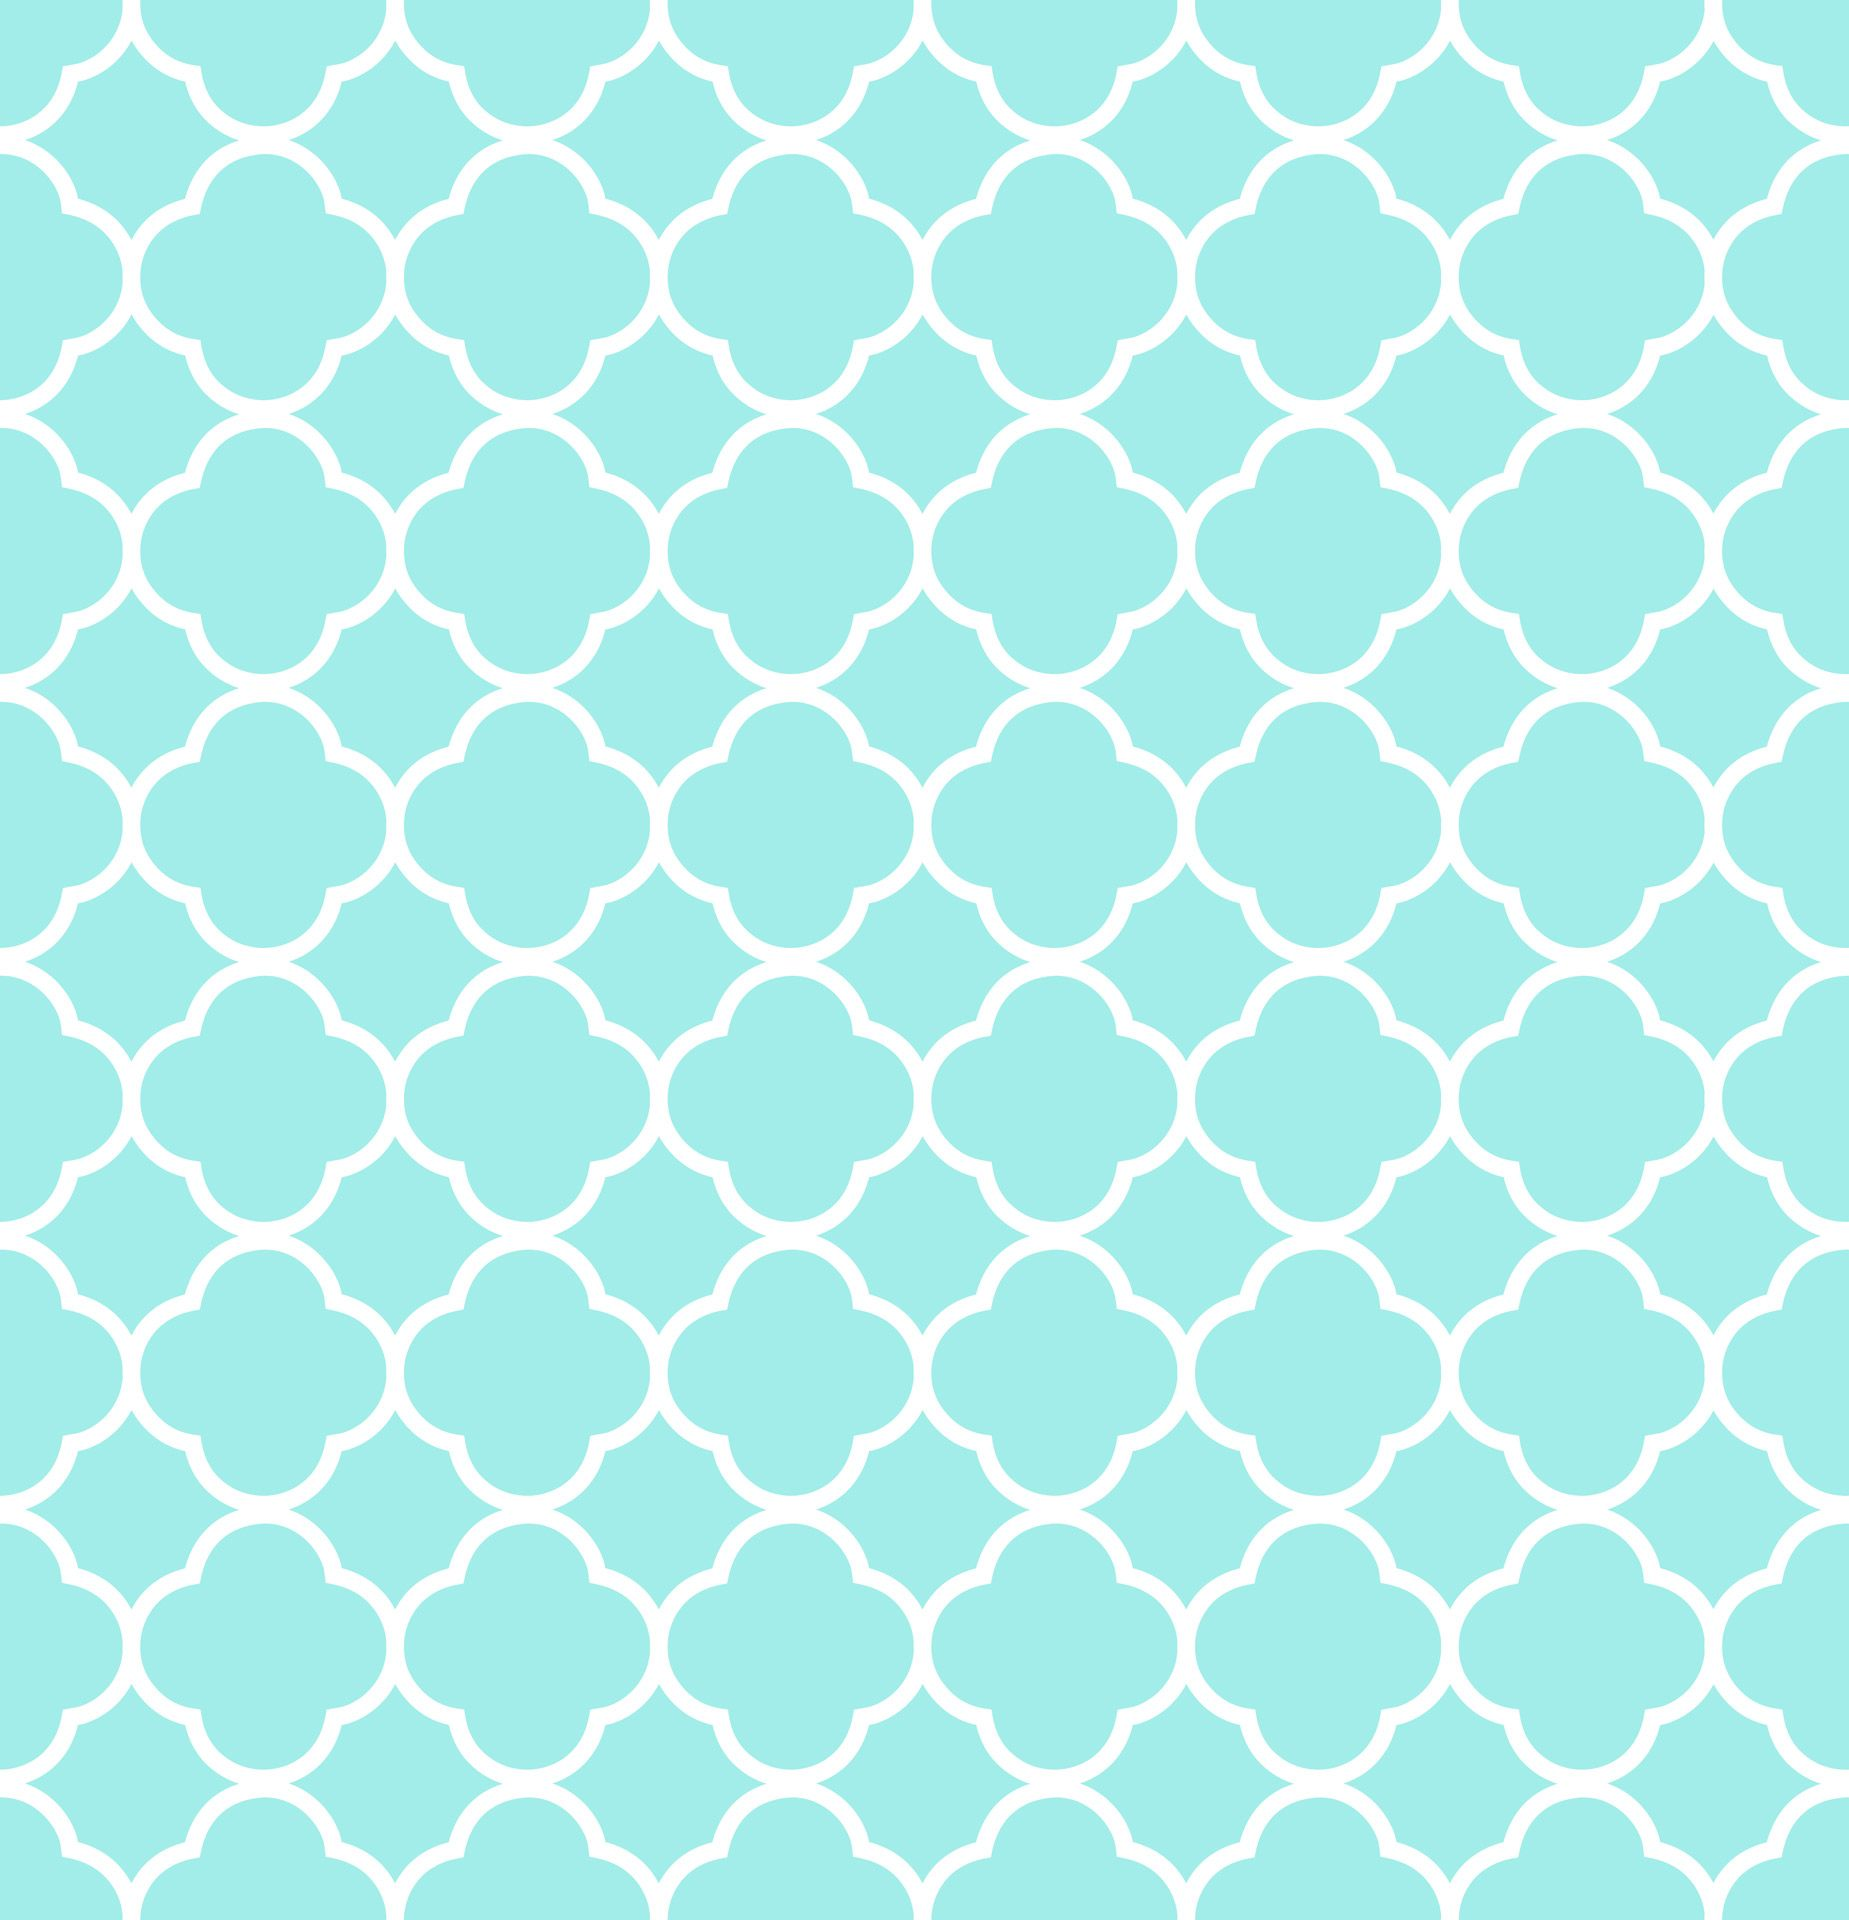 Eye Wall Stickers Quatrefoil Pattern Background Blue Free Stock Photo